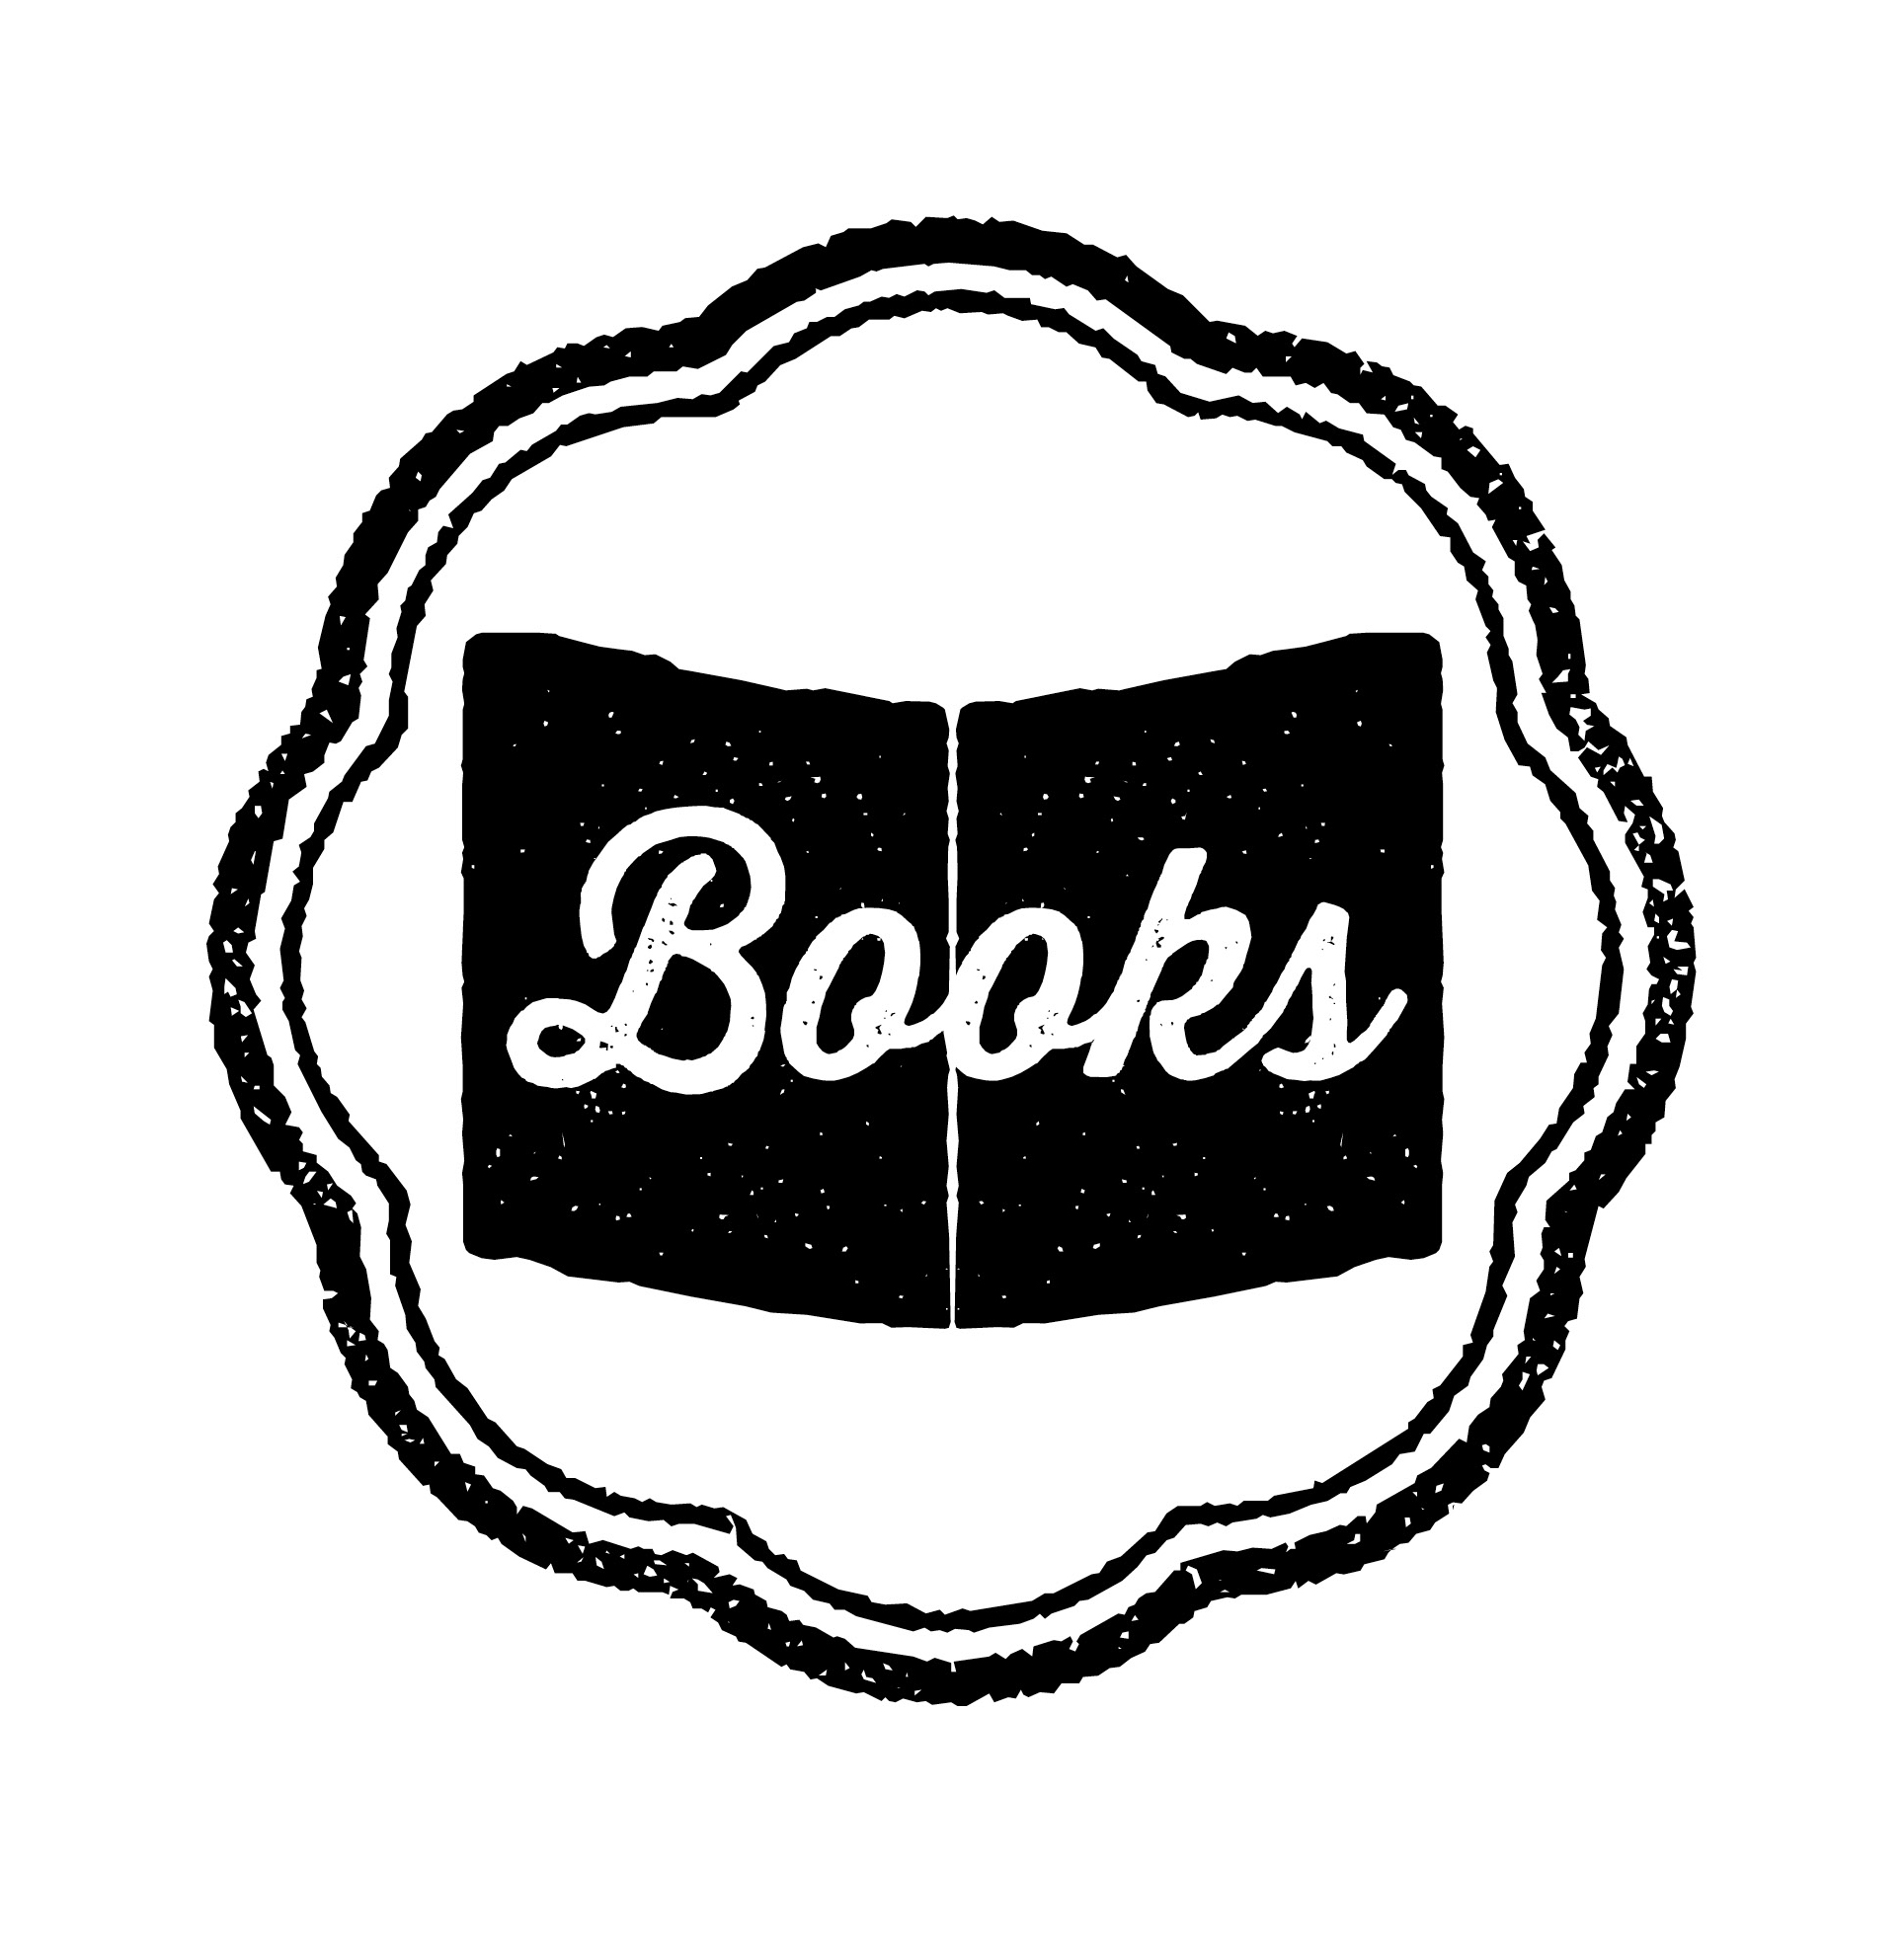 books type treatment cropped.jpg